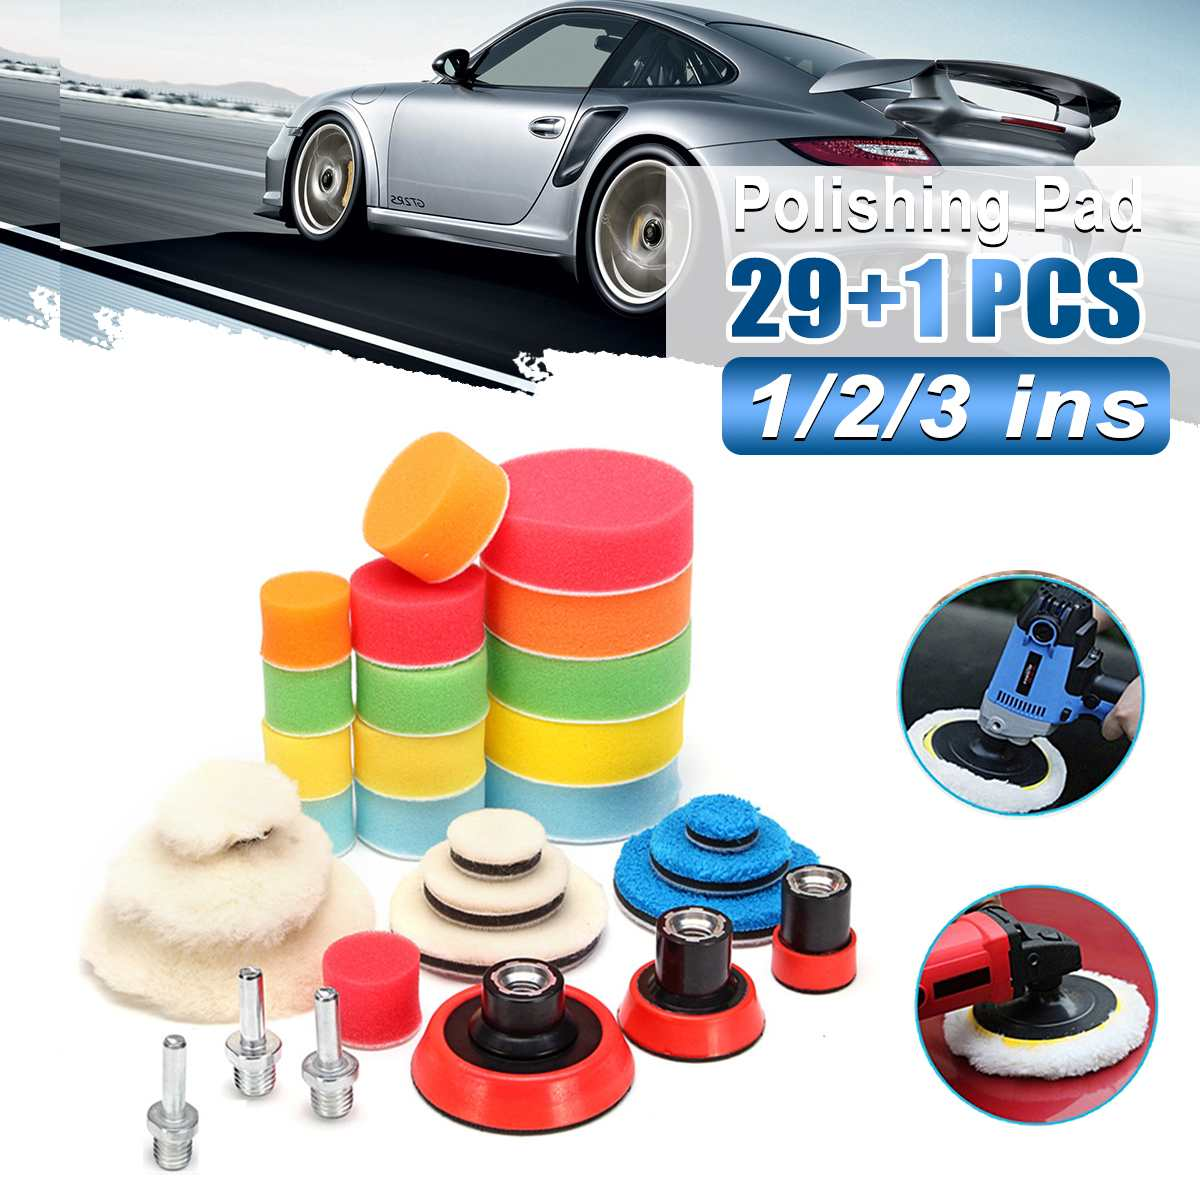 30Pcs Buffing Pad Set Thread 1-3 Inch Auto Car Polishing Pad Kit For Car Polisher + Drill Adaptor M14 Power Tools Accessories